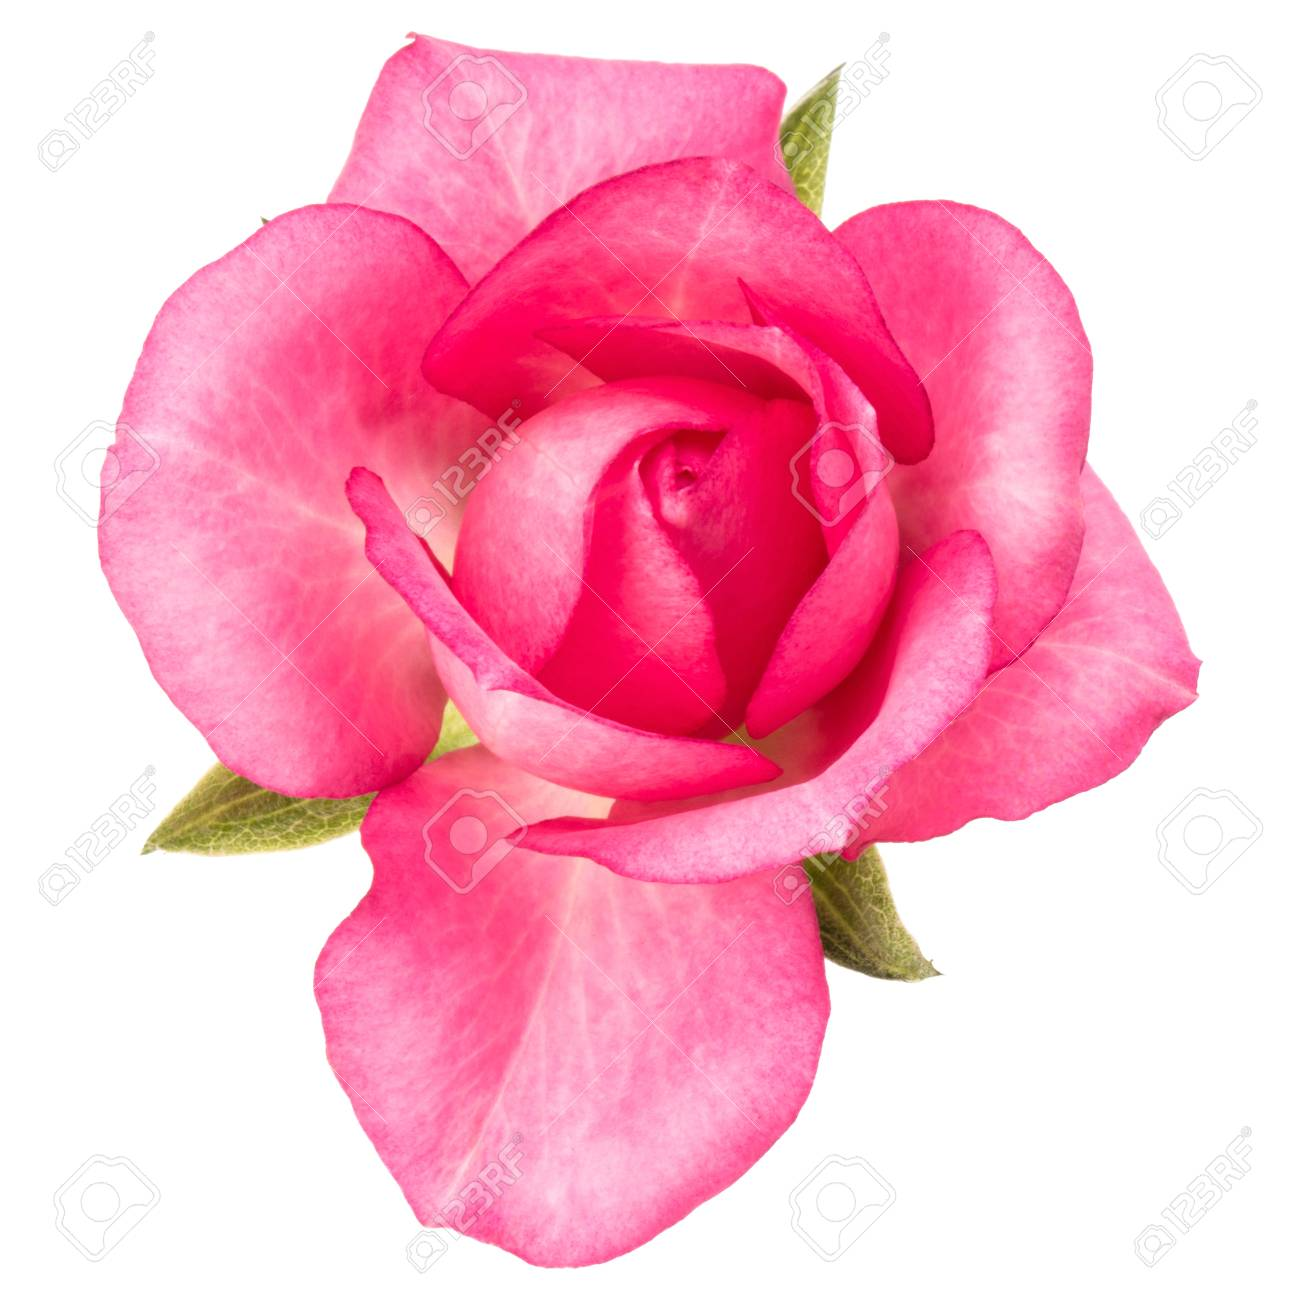 One pink rose flower isolated on white background stock photo one pink rose flower isolated on white background stock photo 88433994 mightylinksfo